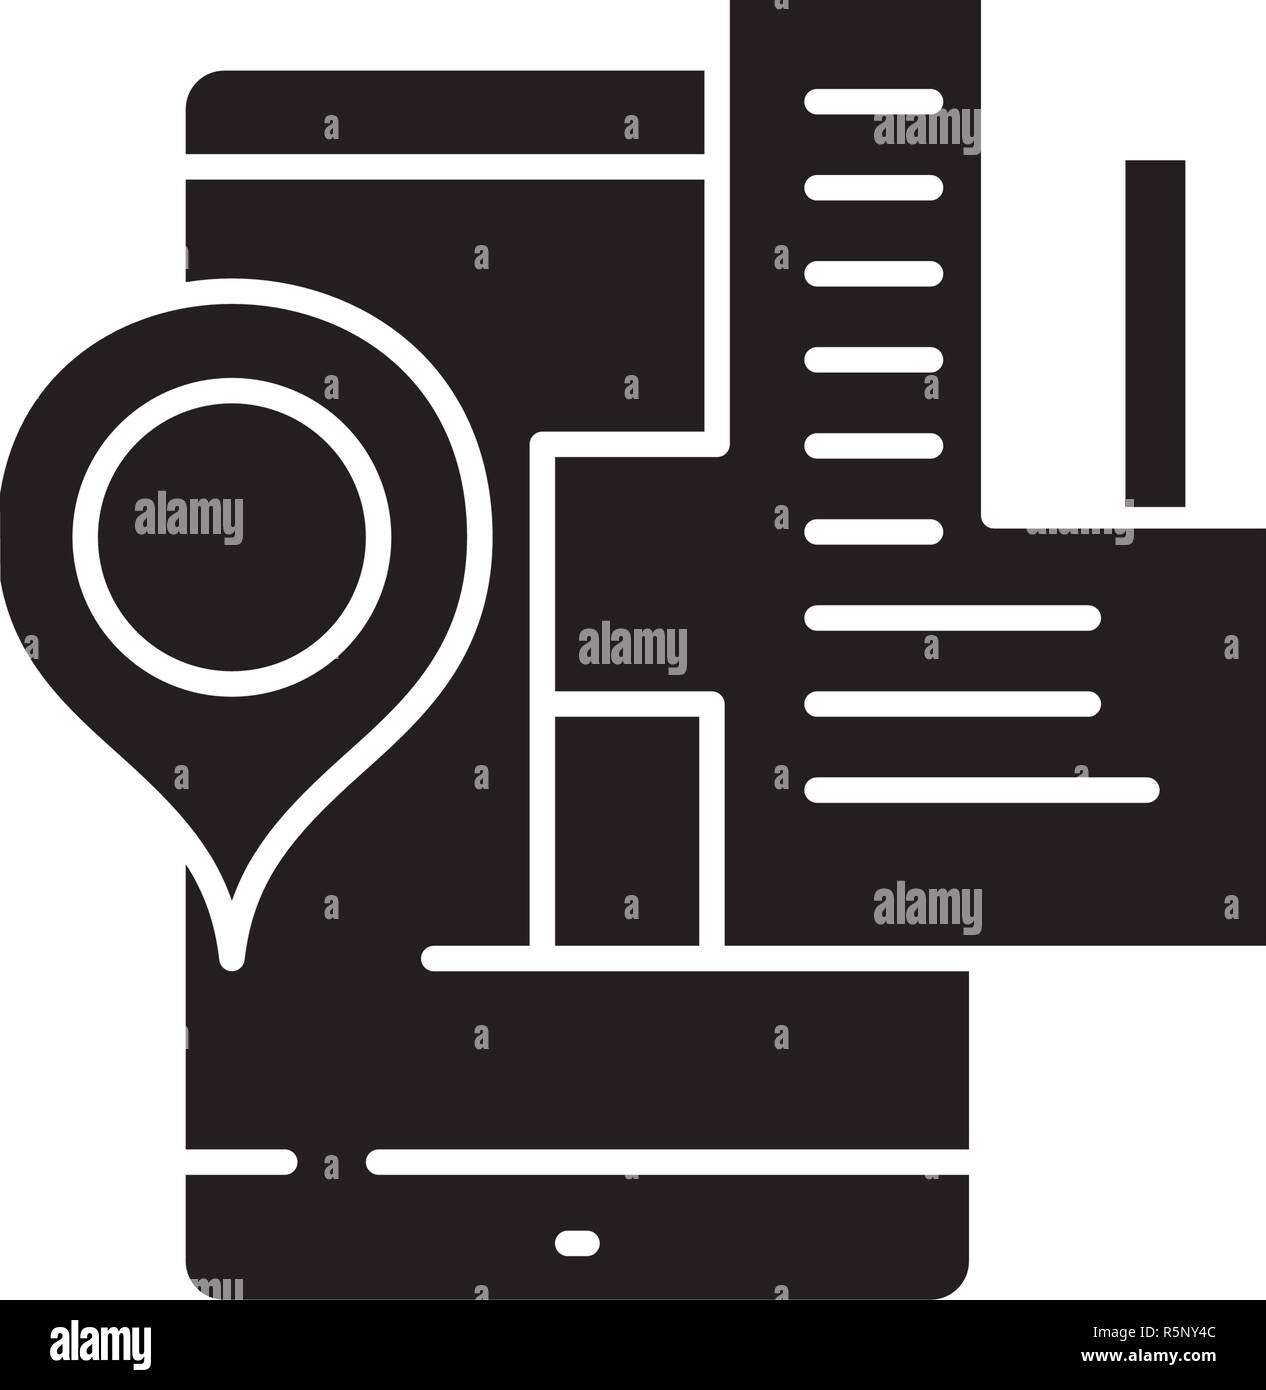 Geolocation system black icon, vector sign on isolated background. Geolocation system concept symbol, illustration  - Stock Vector